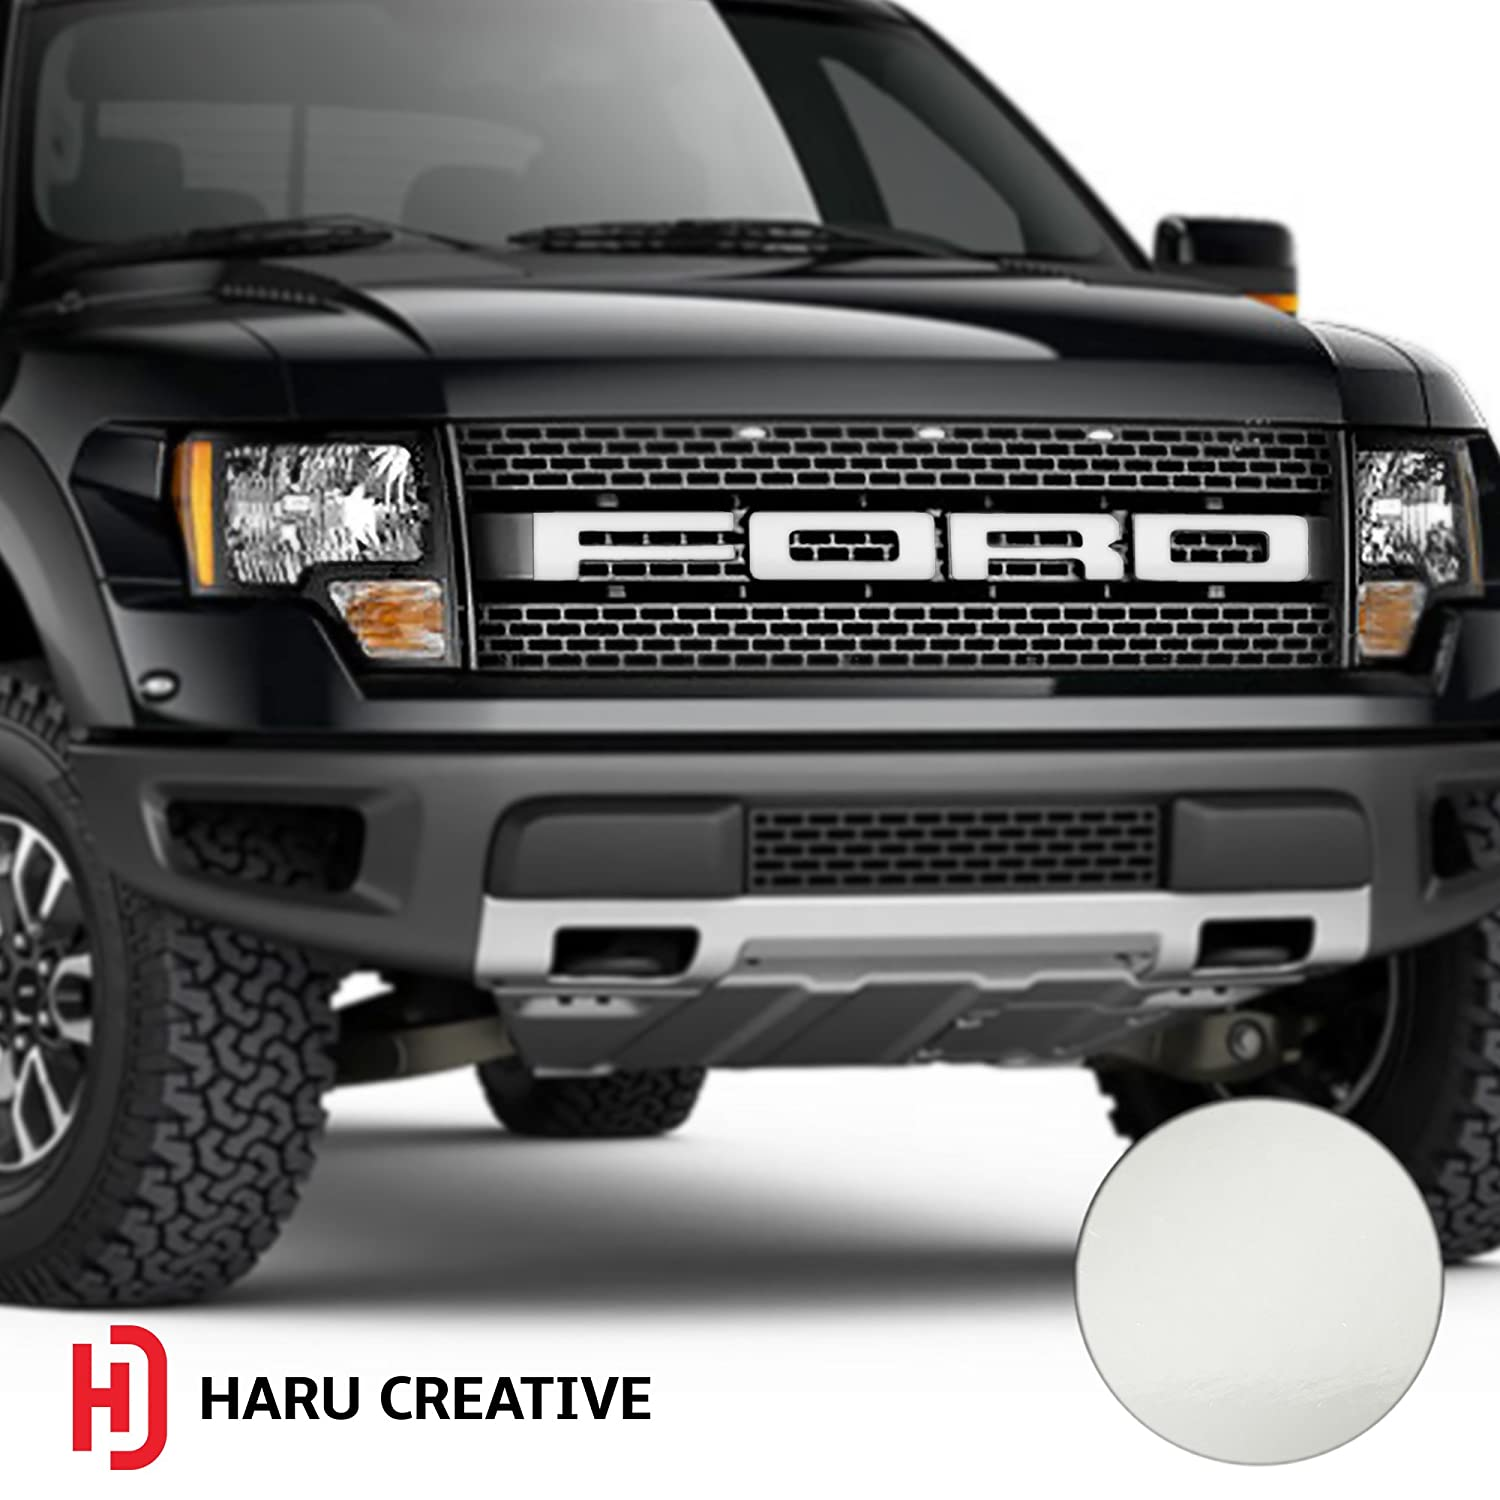 Haru Creative - Gloss White Loyo Hood Grille Emblem Letter Overlay Vinyl Decal Compatible Fits Ford F150 F-150 Raptor 2010 2011 2012 2013 2014